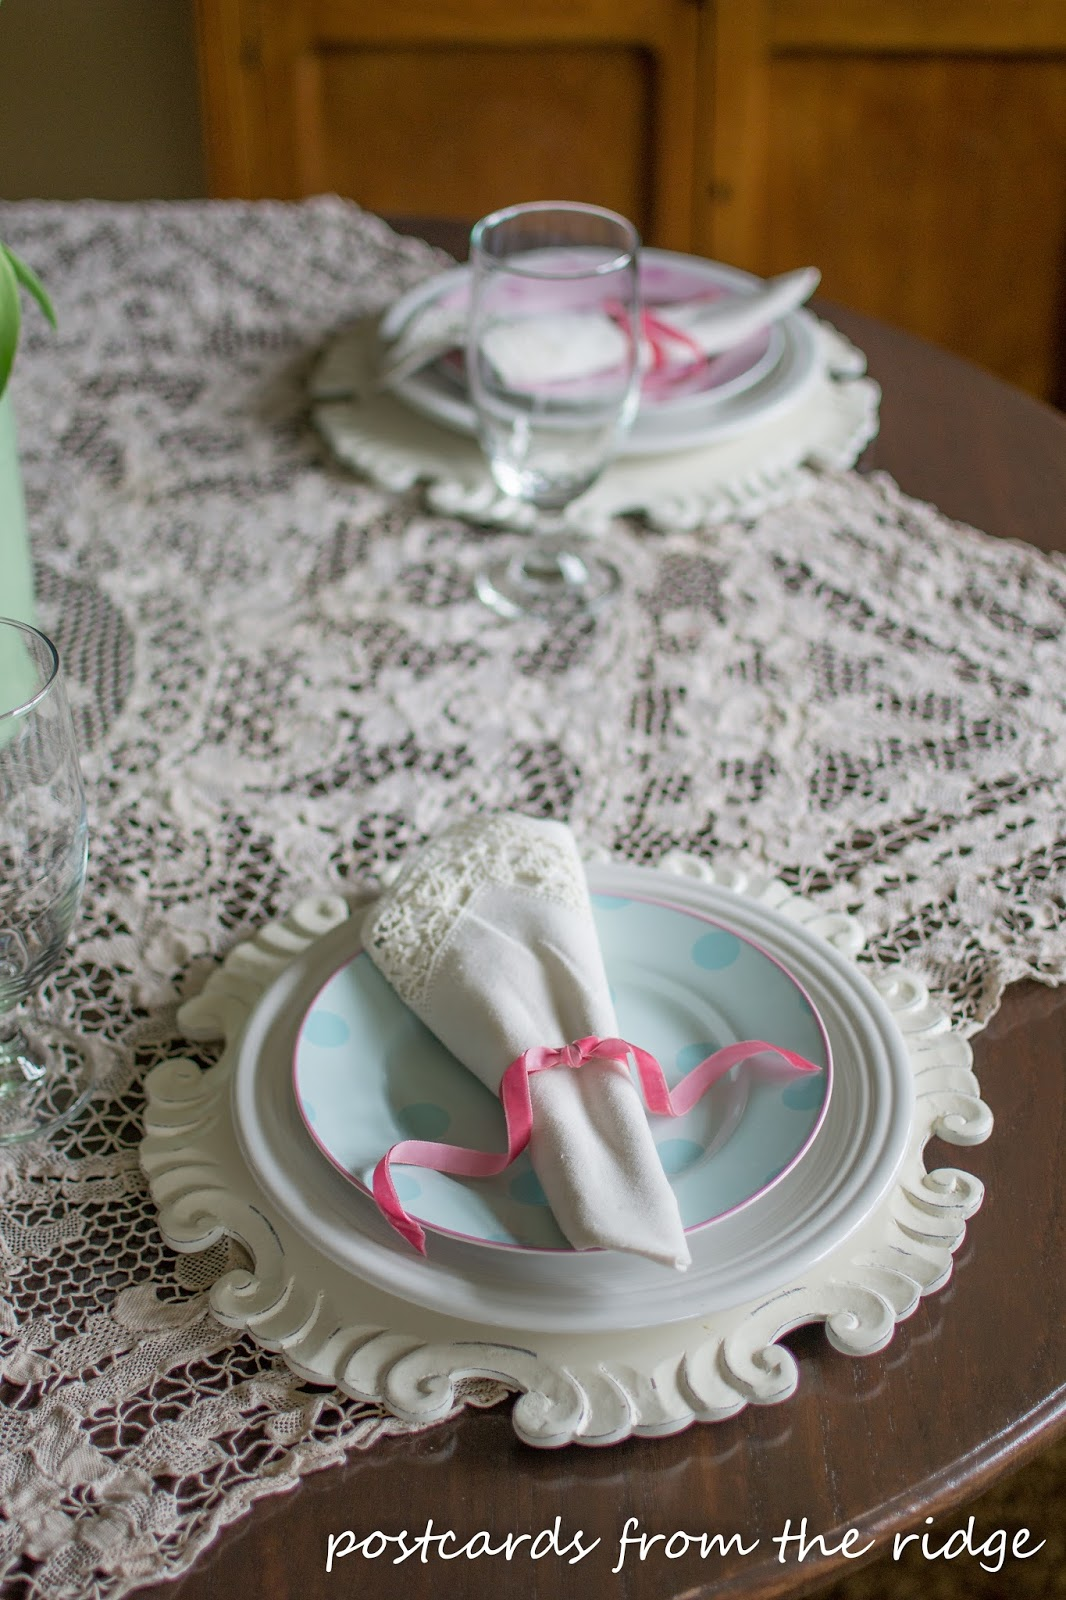 Using vintage finds to create a spring table. Postcards from the Ridge.